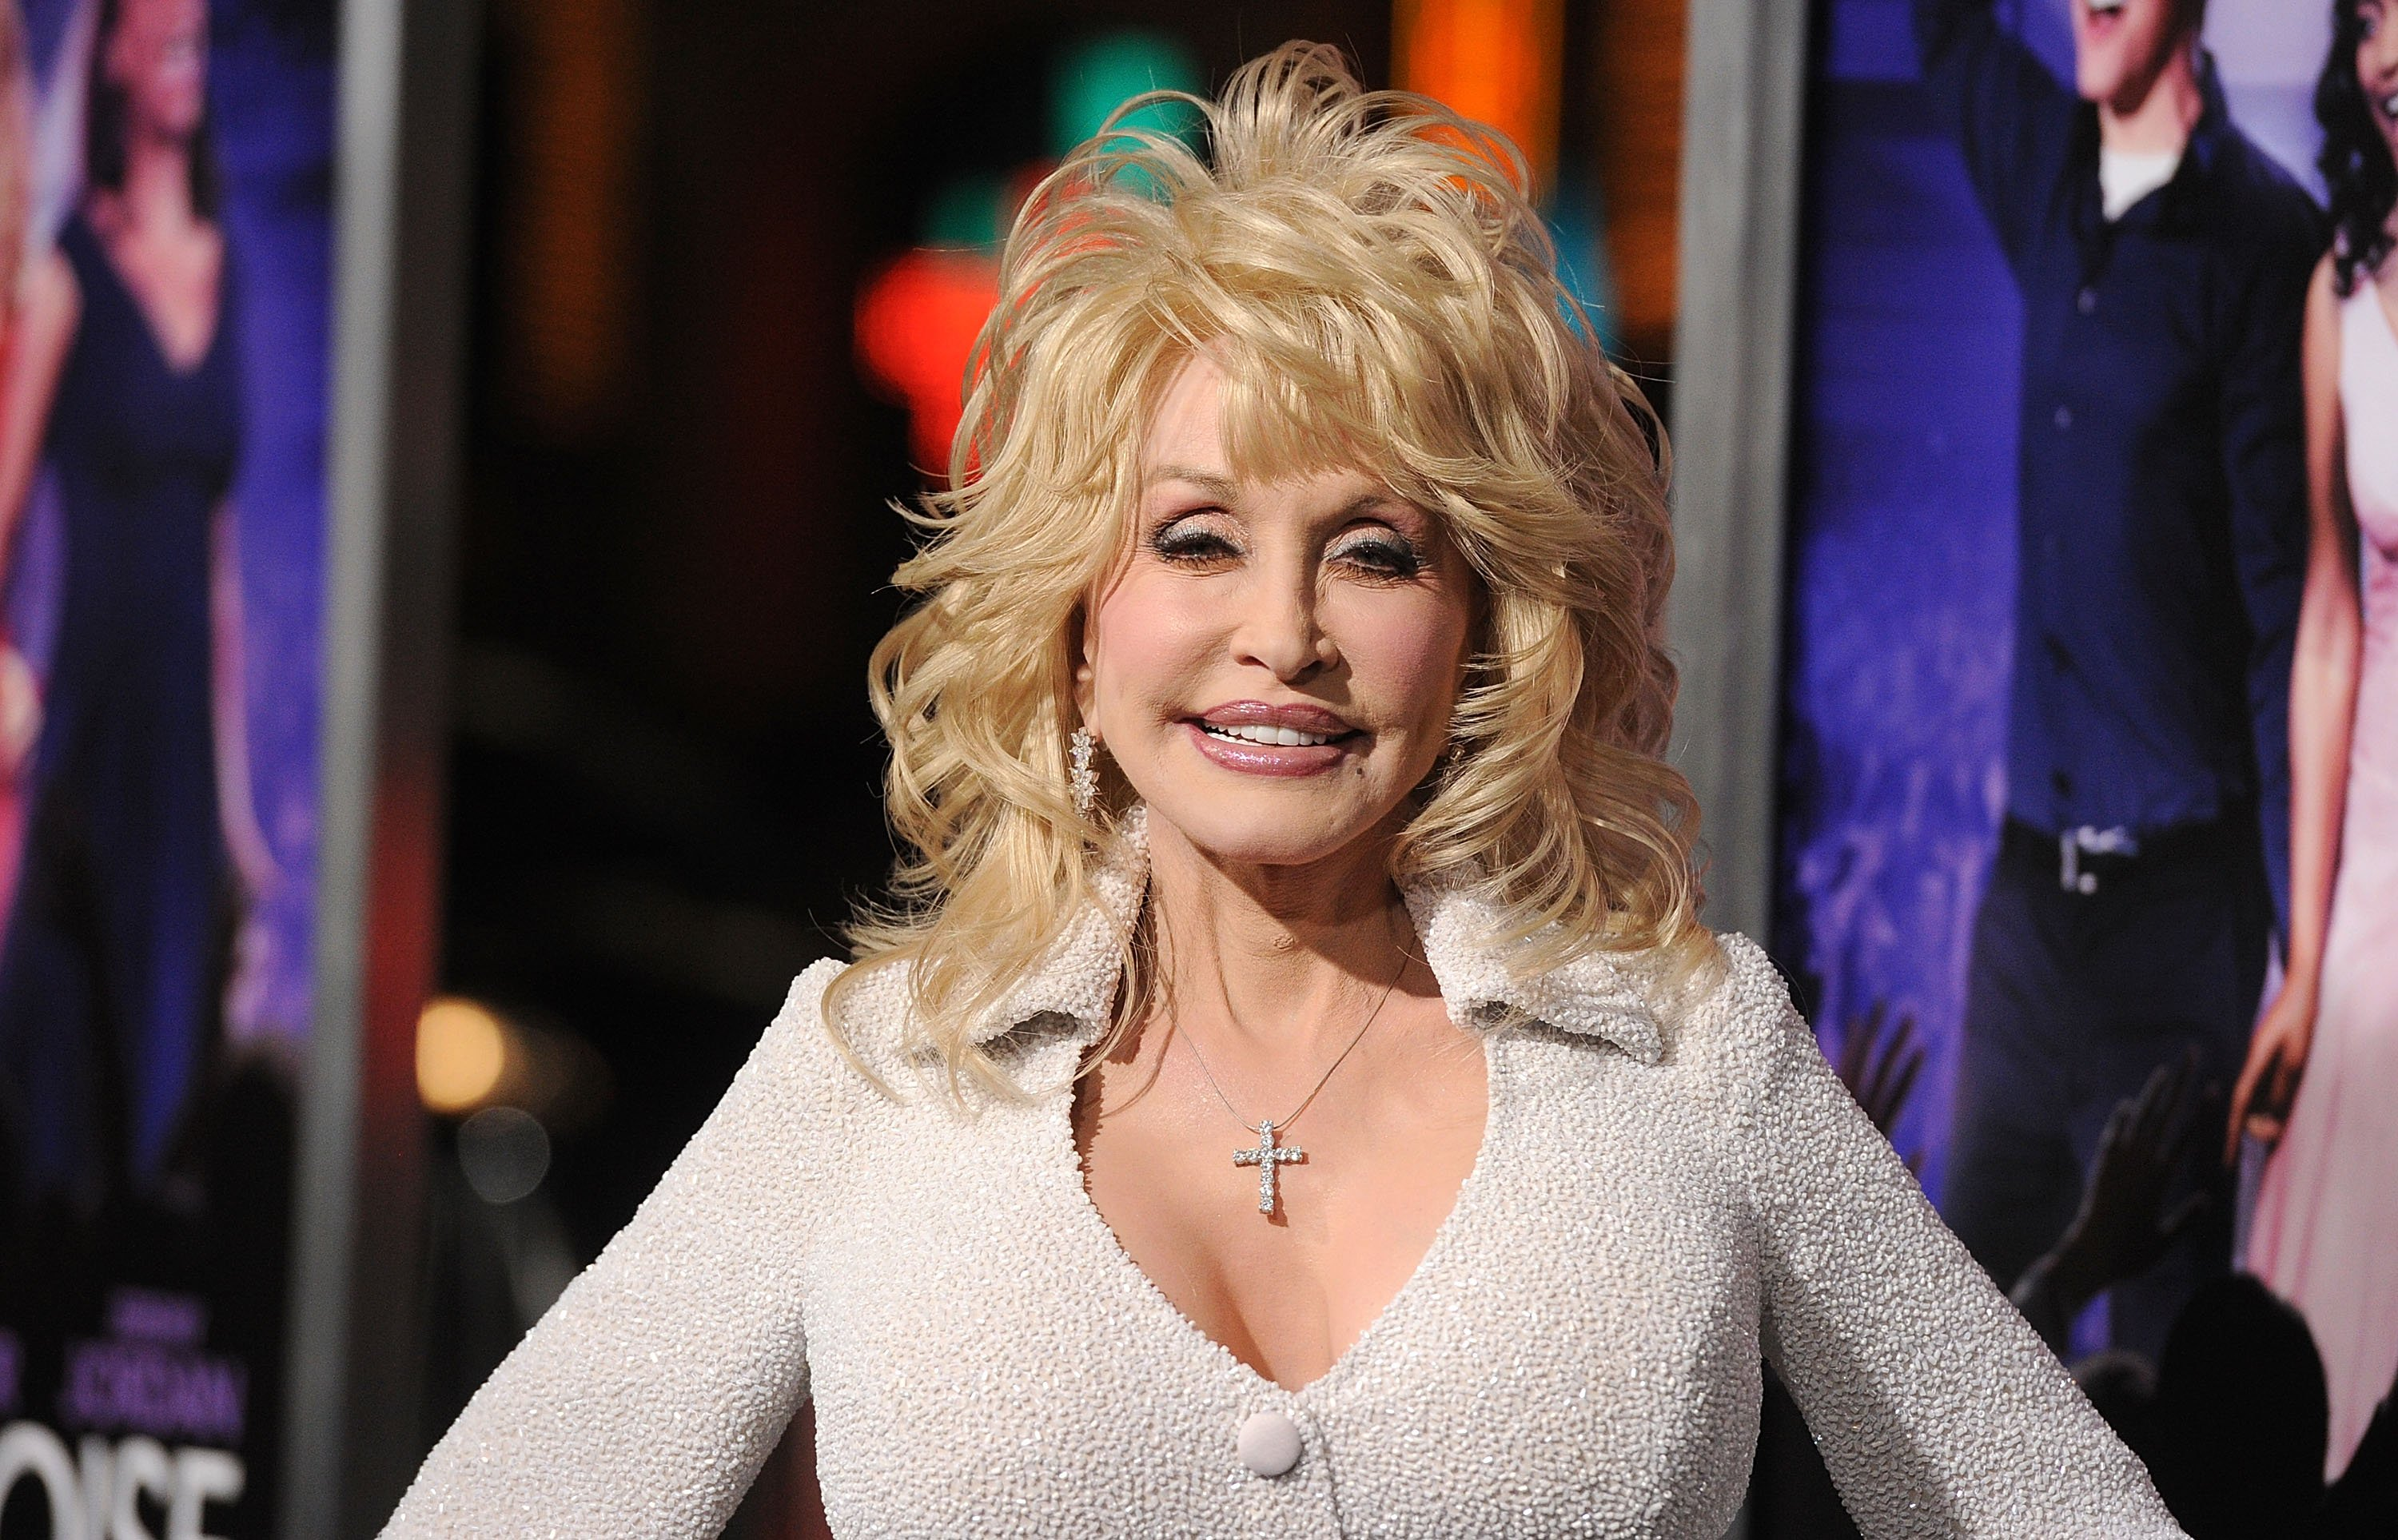 """Country music icon and actress Dolly Parton attends the 2012 premiere of """"Joyful Noise"""" in Grauman's Chinese Theatre in California. 